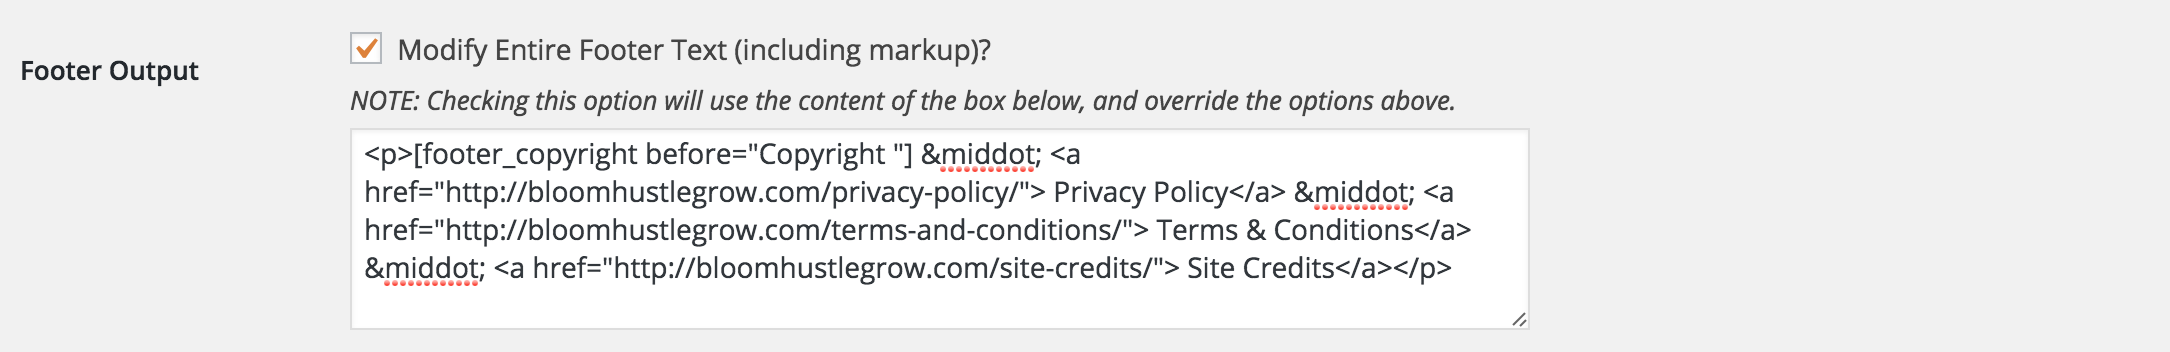 How to edit the footer in Genesis to add in a privacy policy